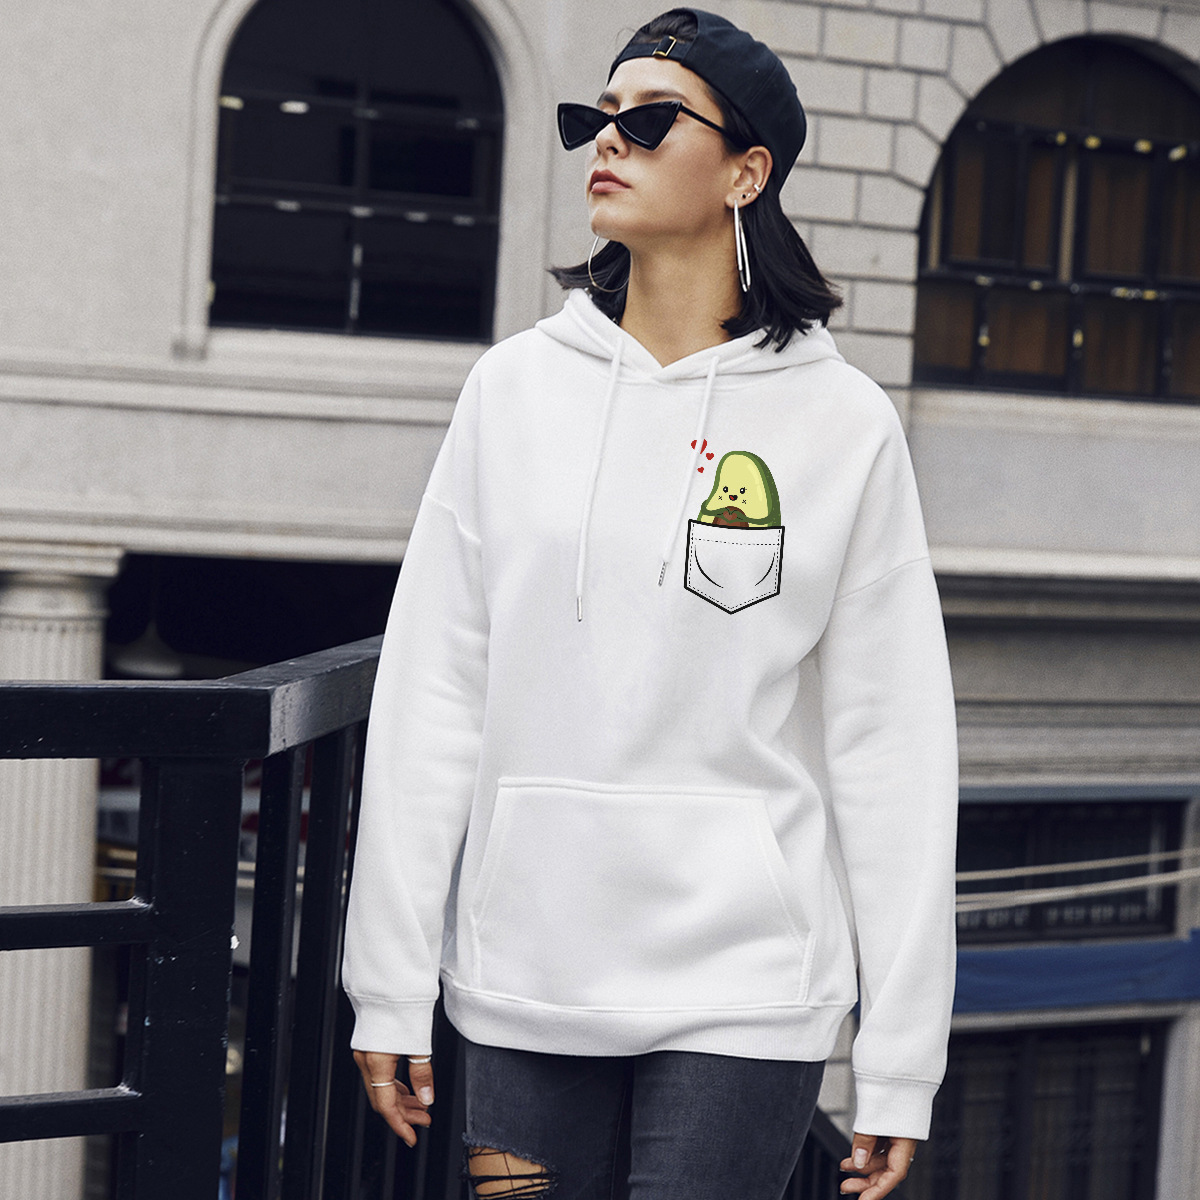 autumn and winter women's street casual hooded sweater pocket avocado NSSN1878